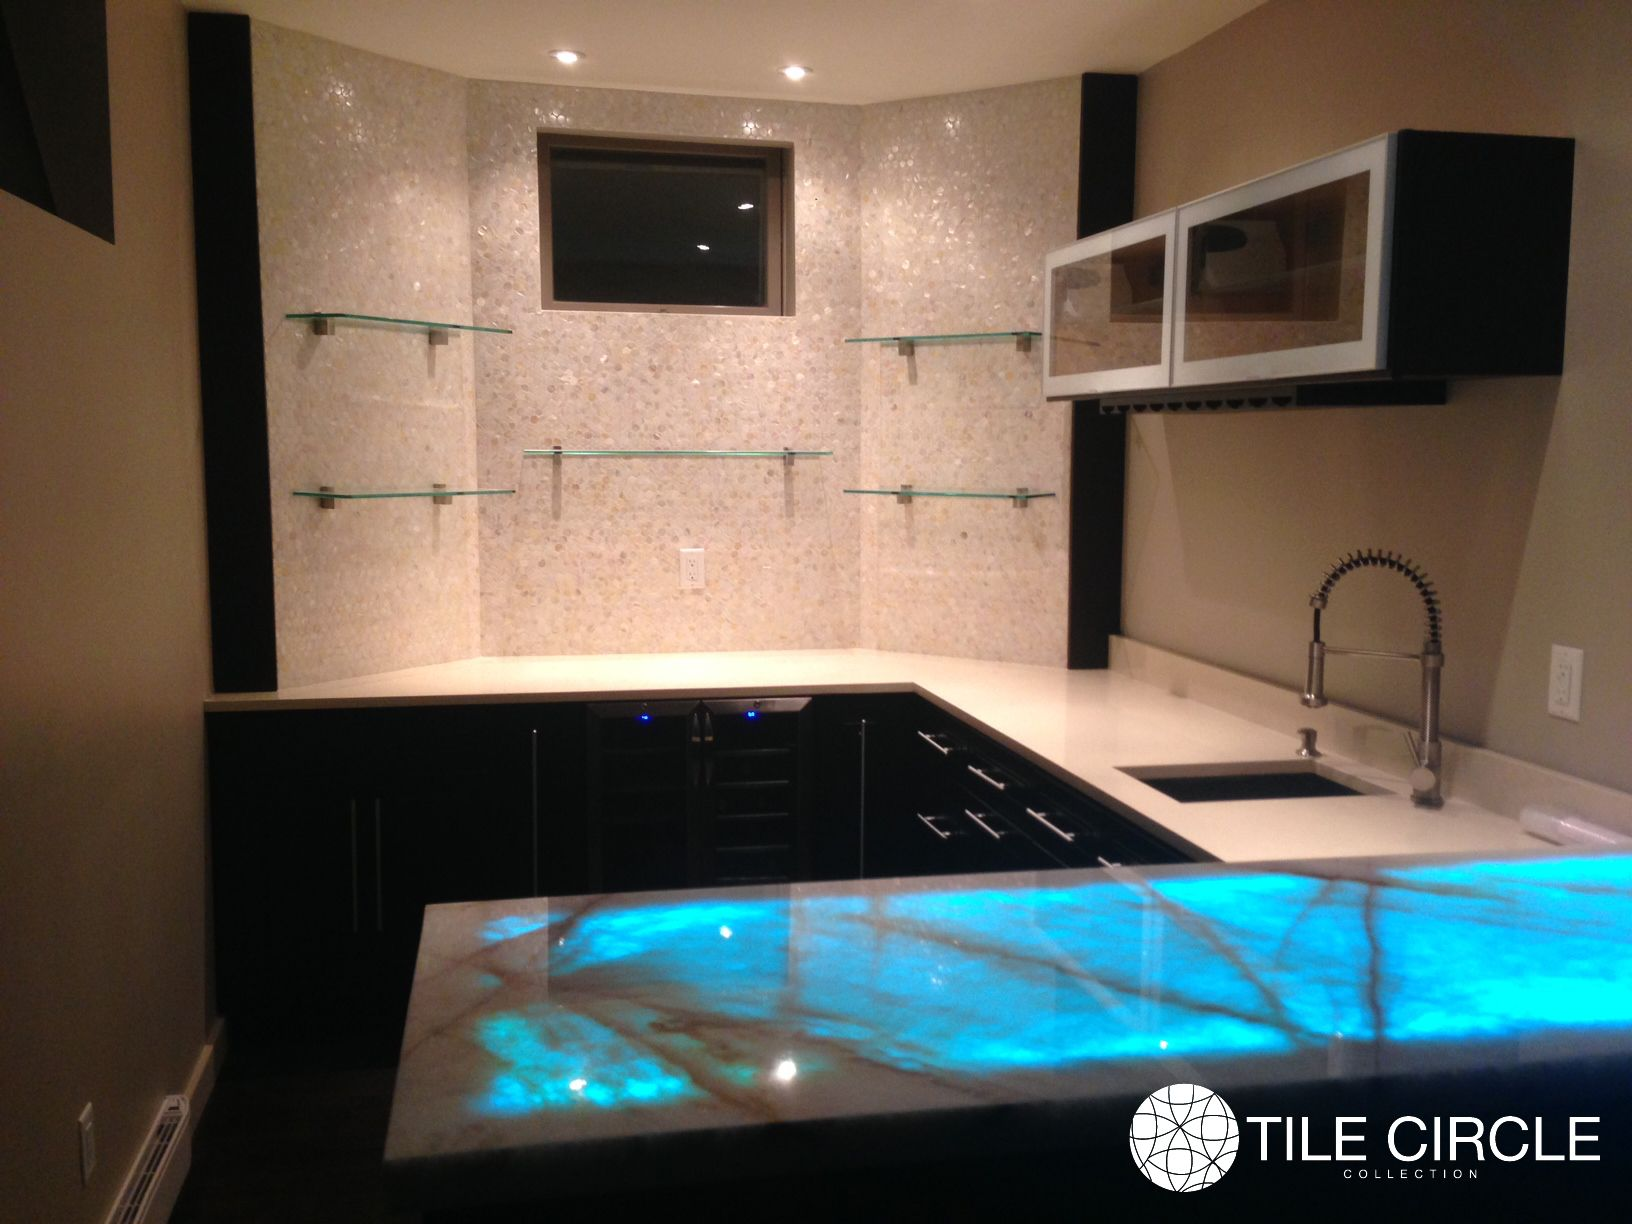 Mother Of Pearl Tile By Tile Circle For Bar Backsplash Available